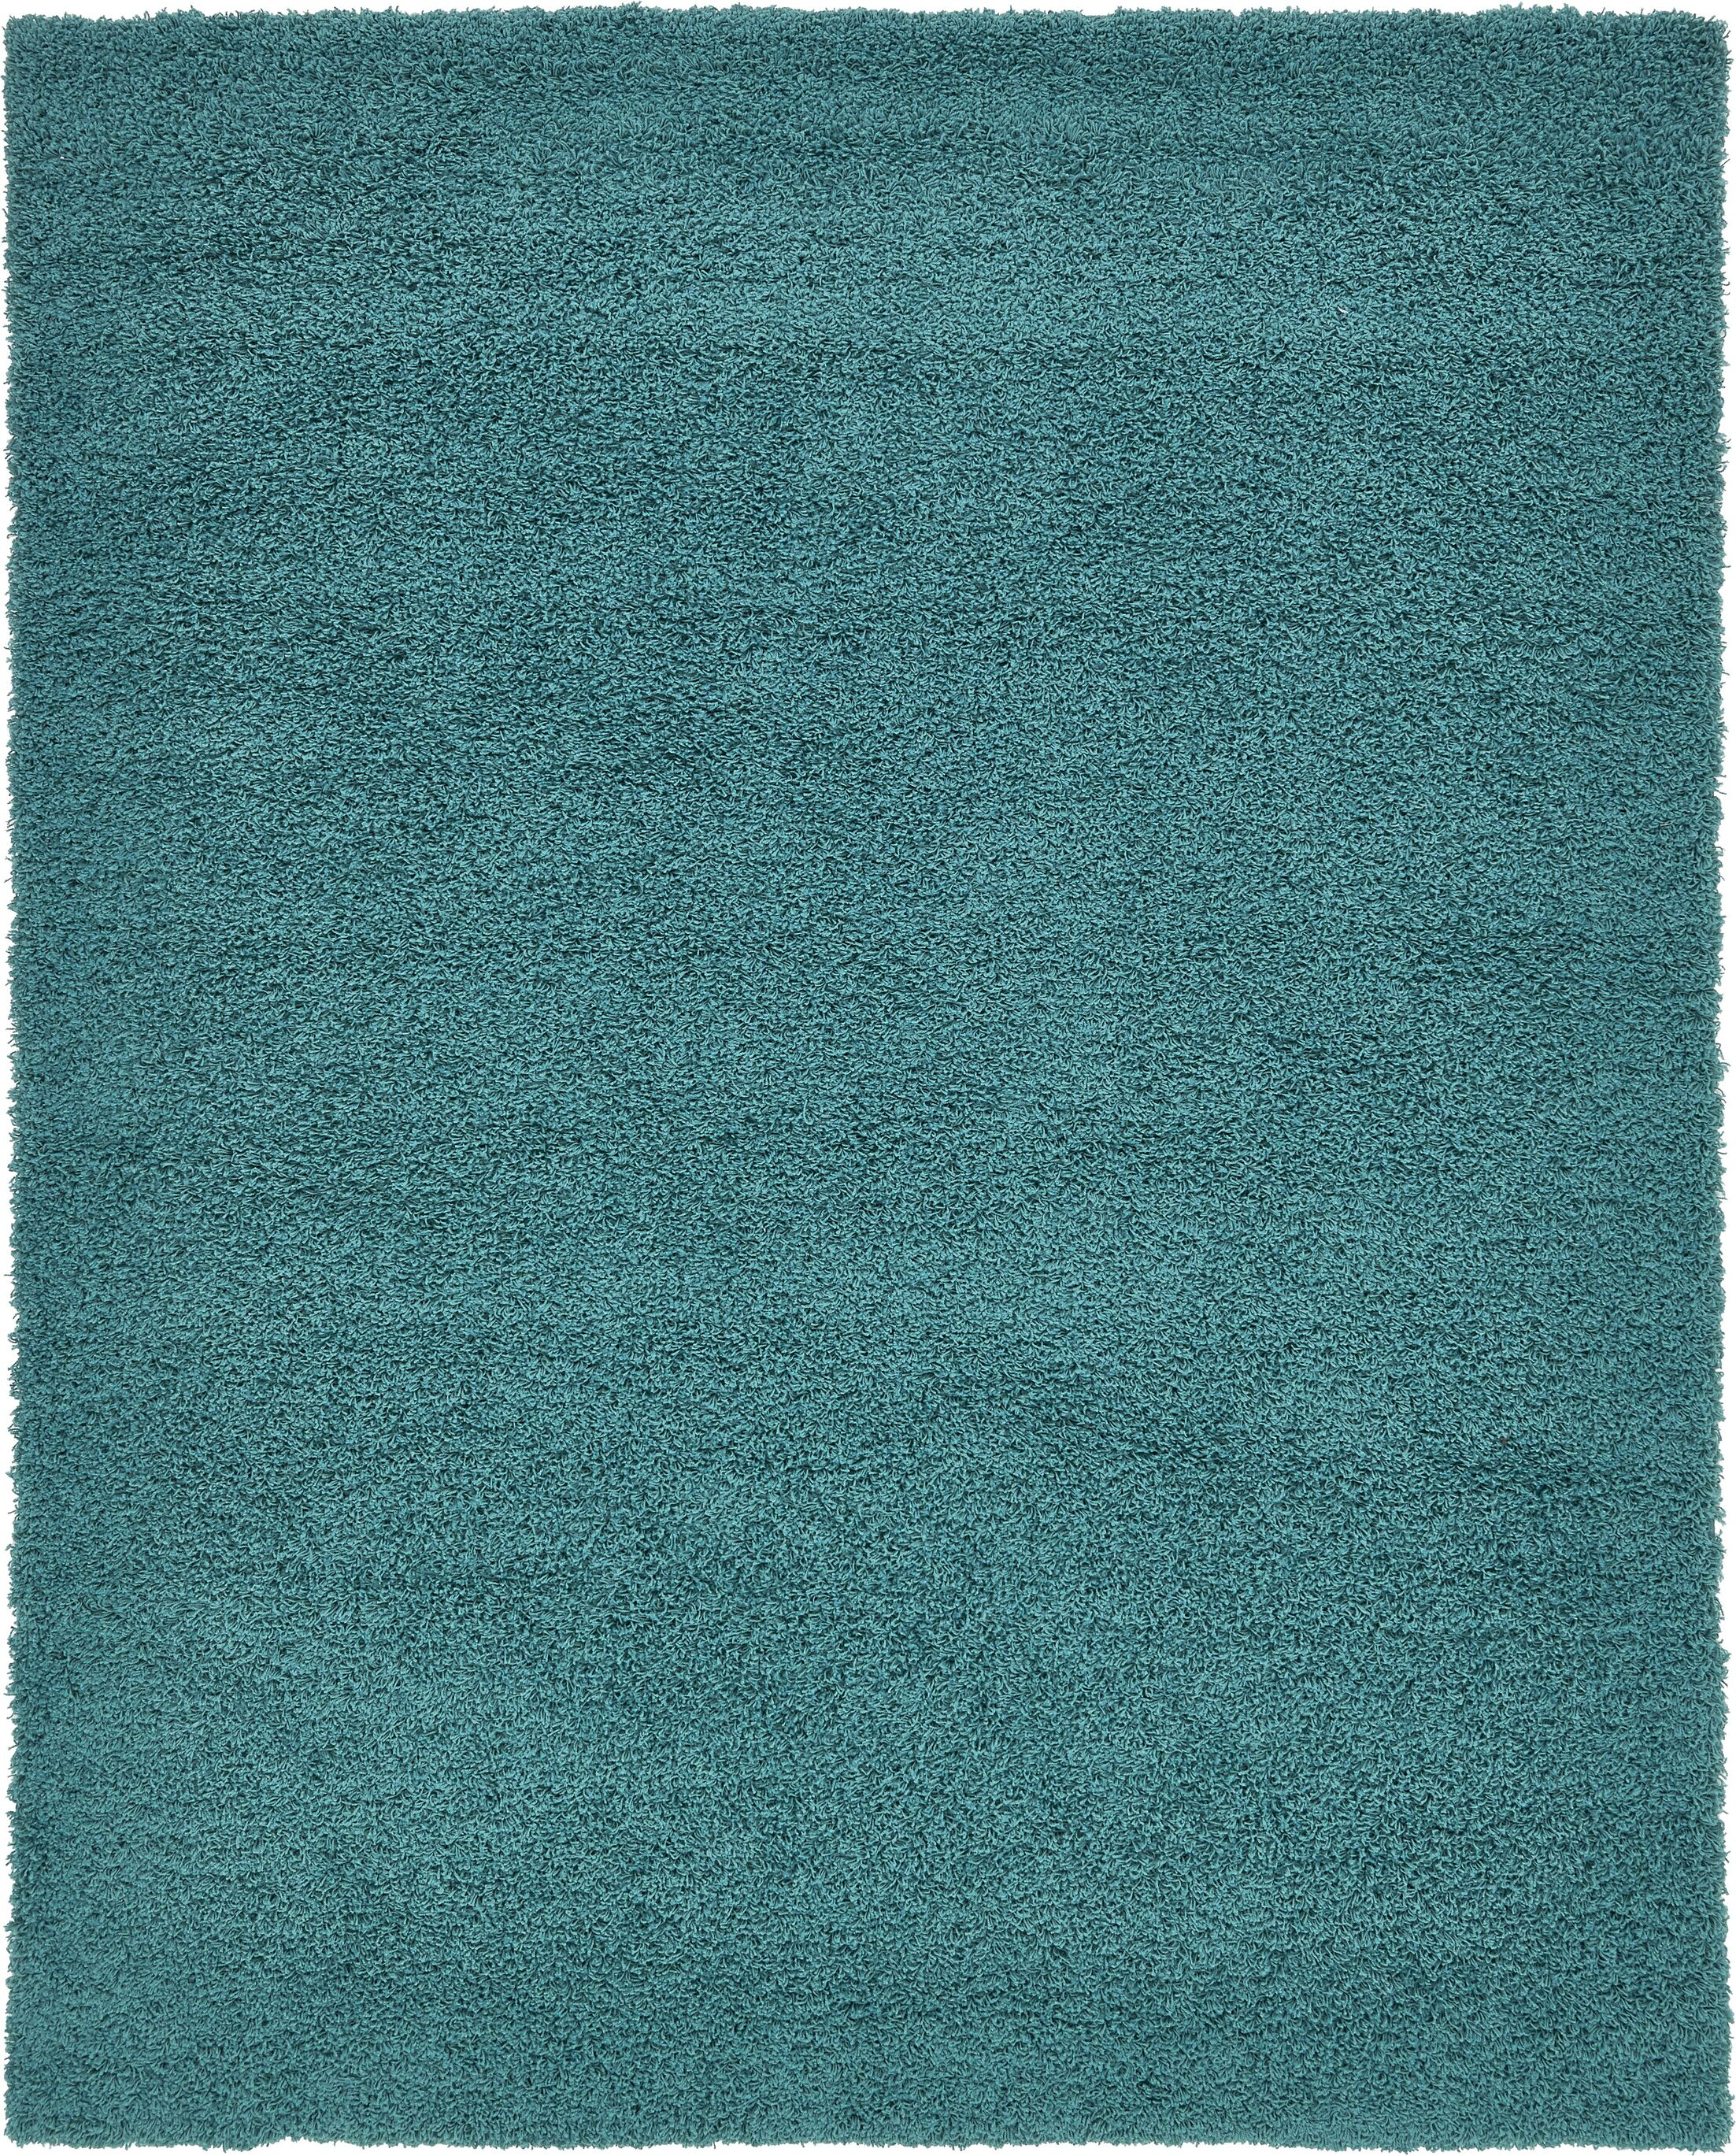 Lilah Teal Blue Area Rug Rug Size: Rectangle 8' x 10'